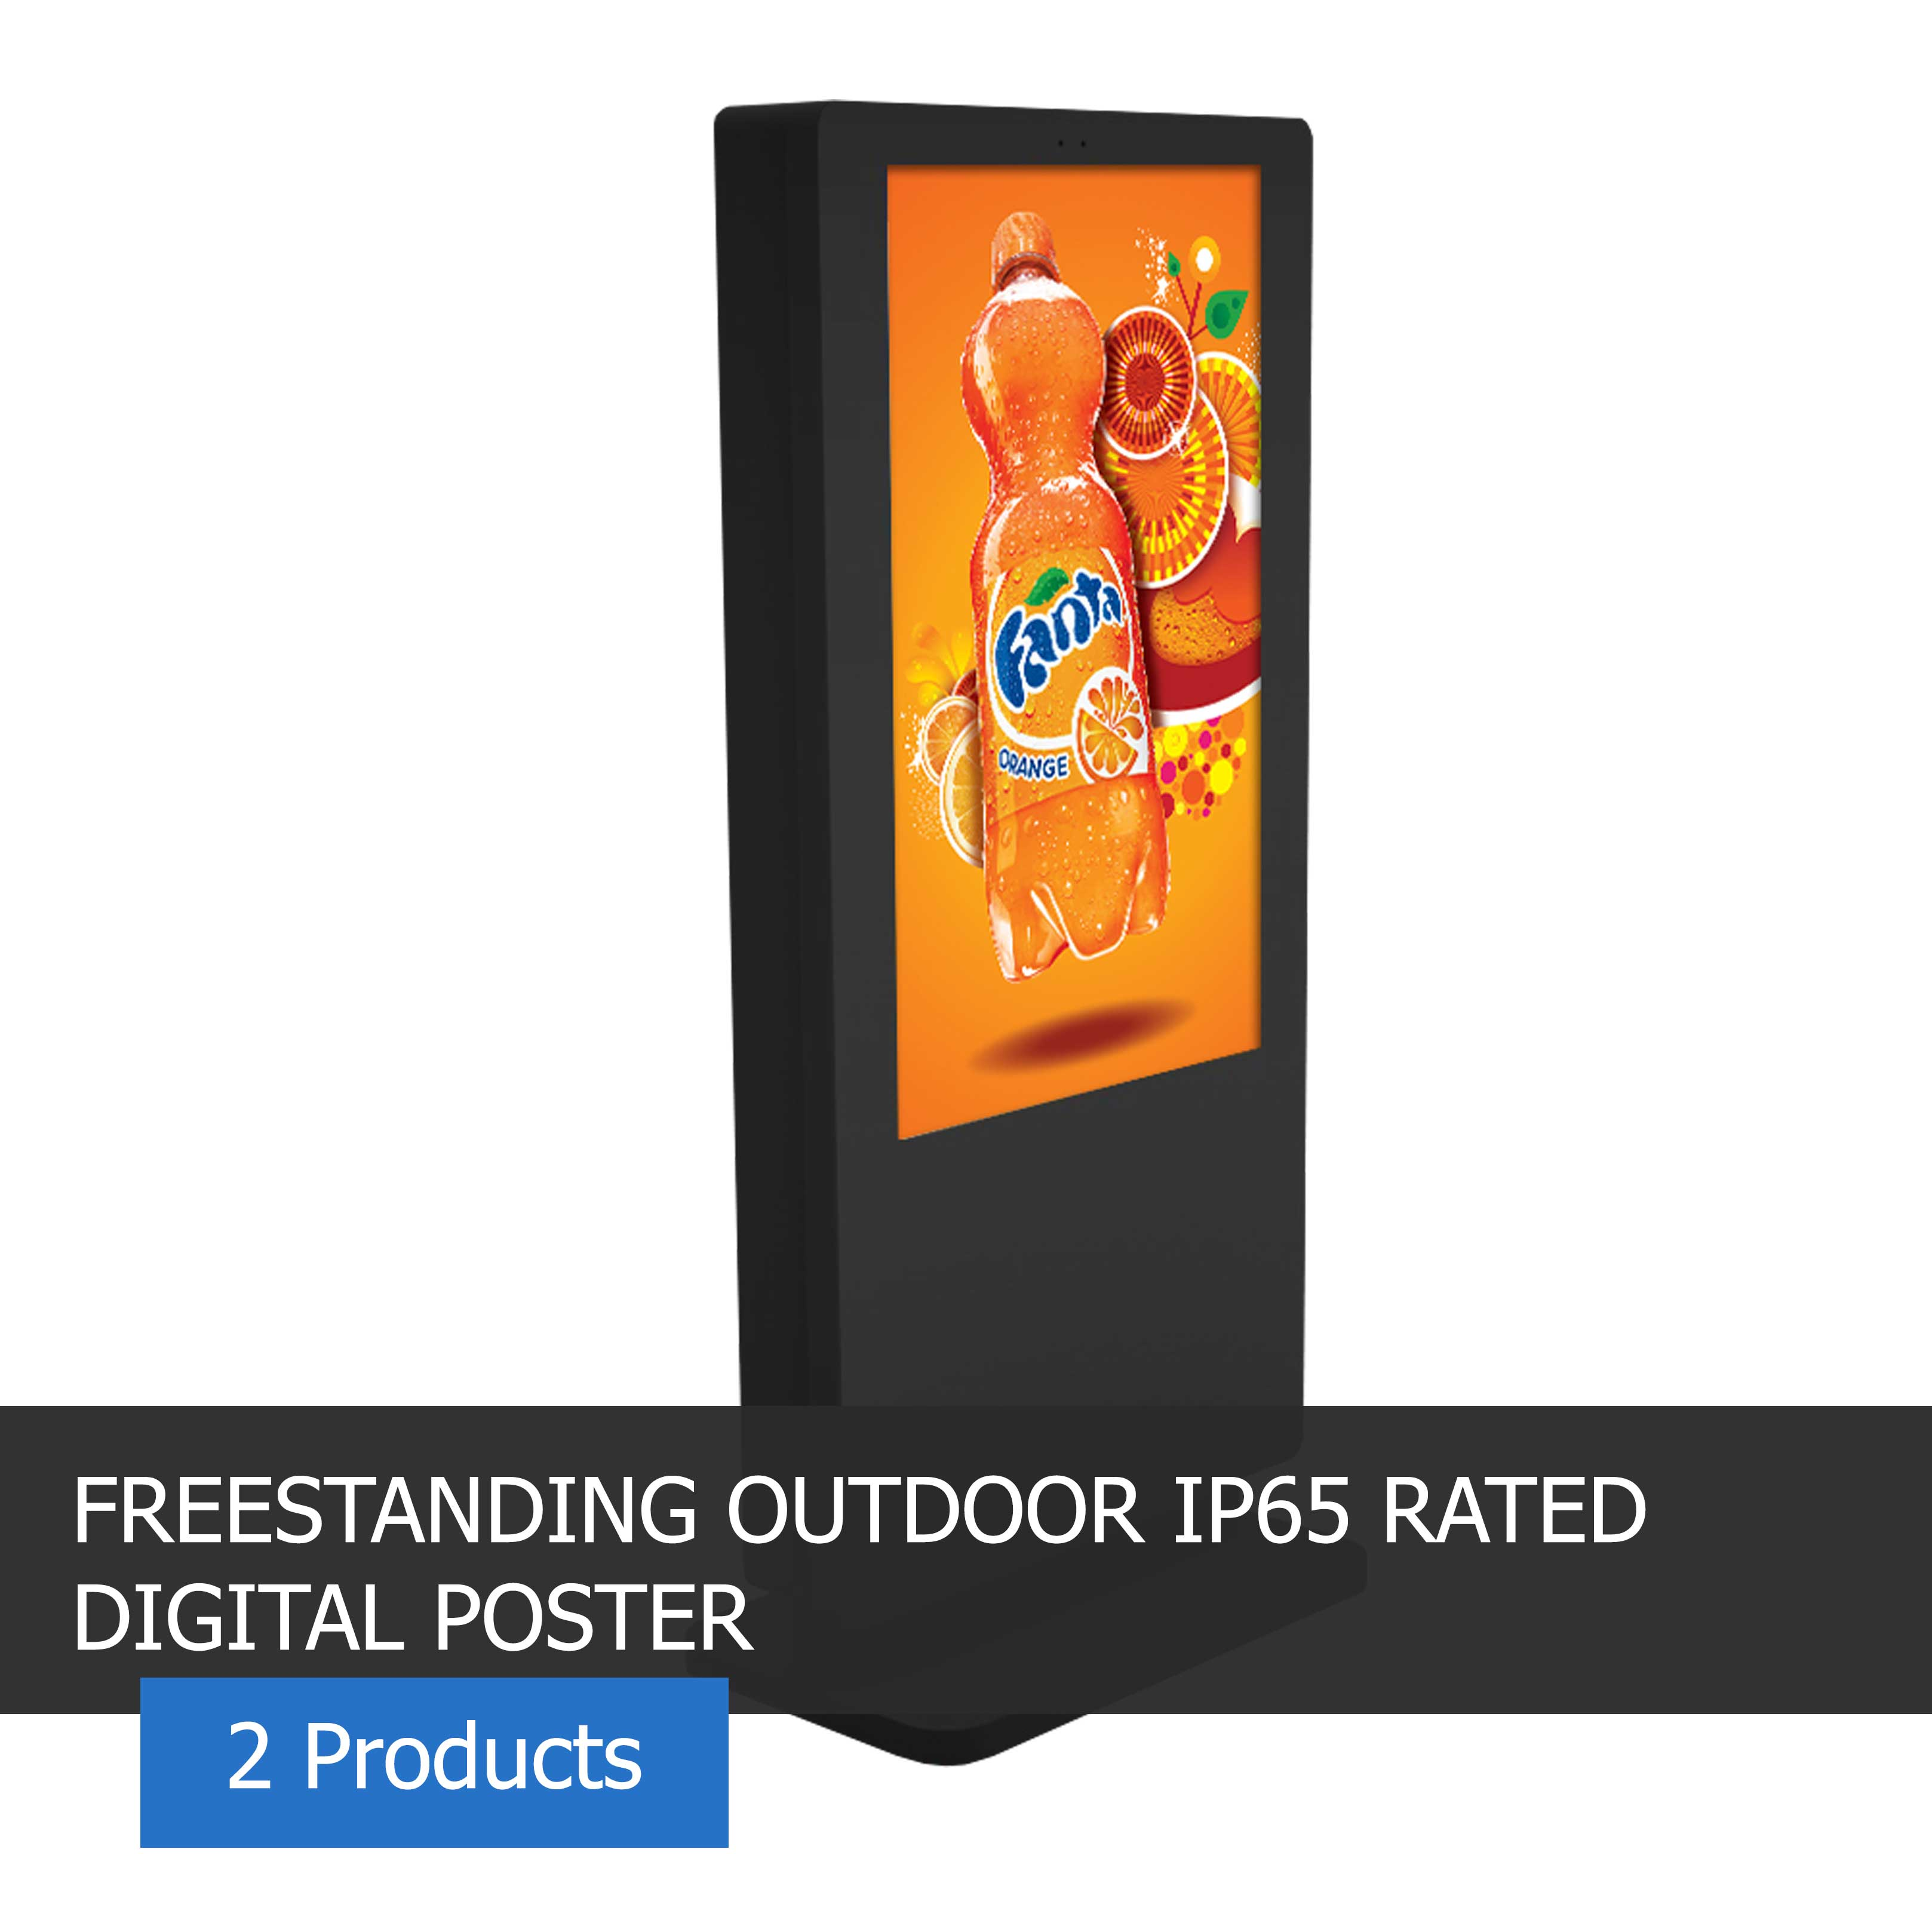 image of a freestanding outdoor digital poster